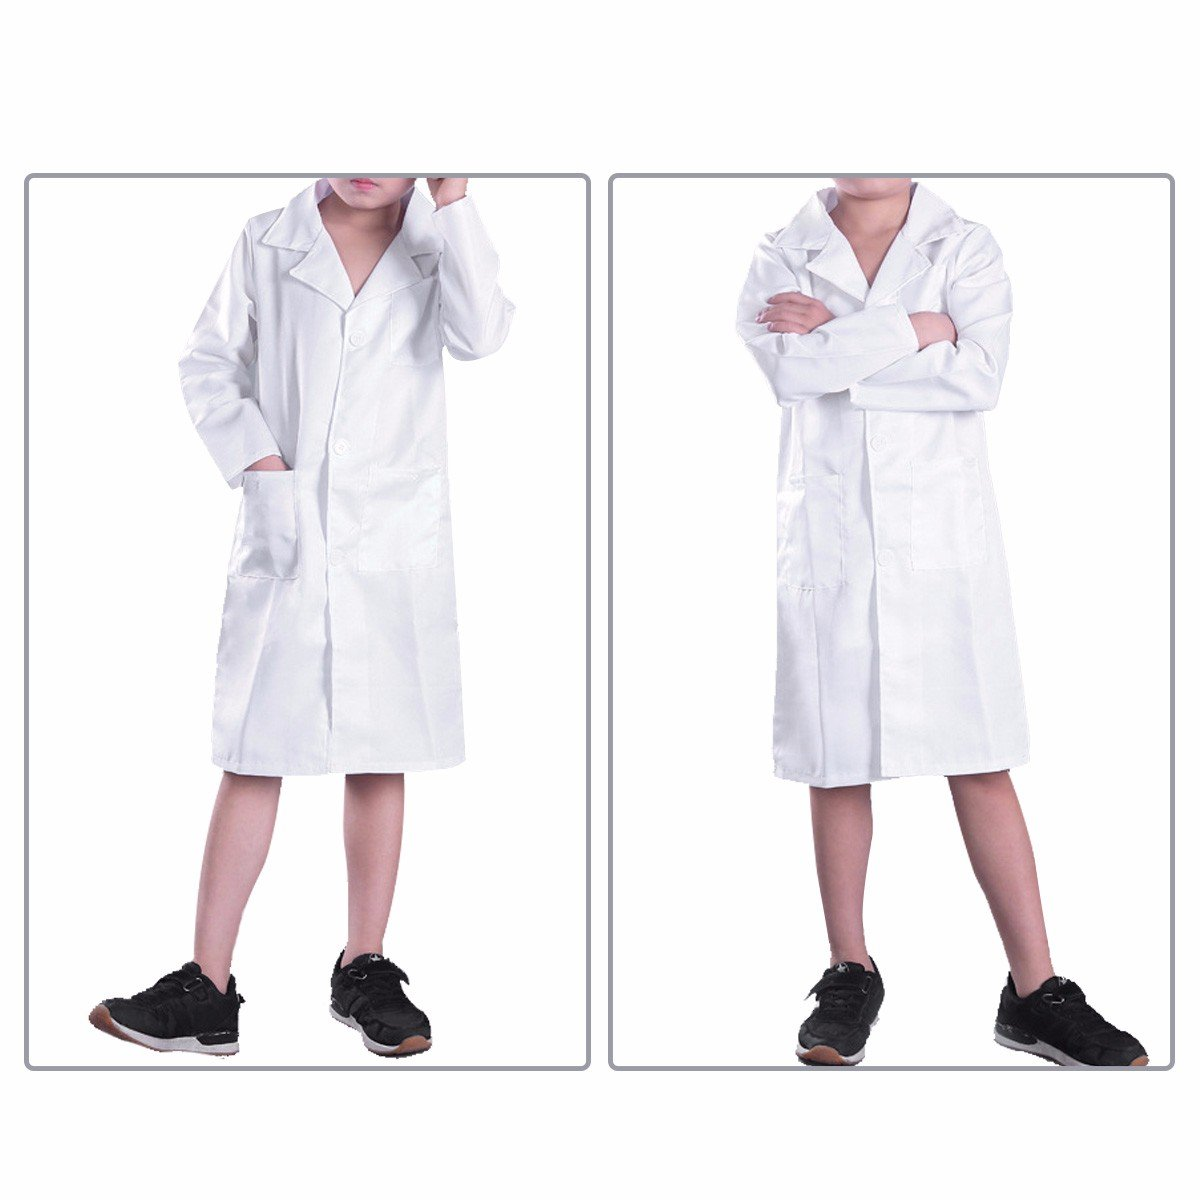 YiZYiF Childrens Boys Girls Lab Coat Laboratory Uniform Doctor Fancy Cosplay Dress up Costume White 10-12